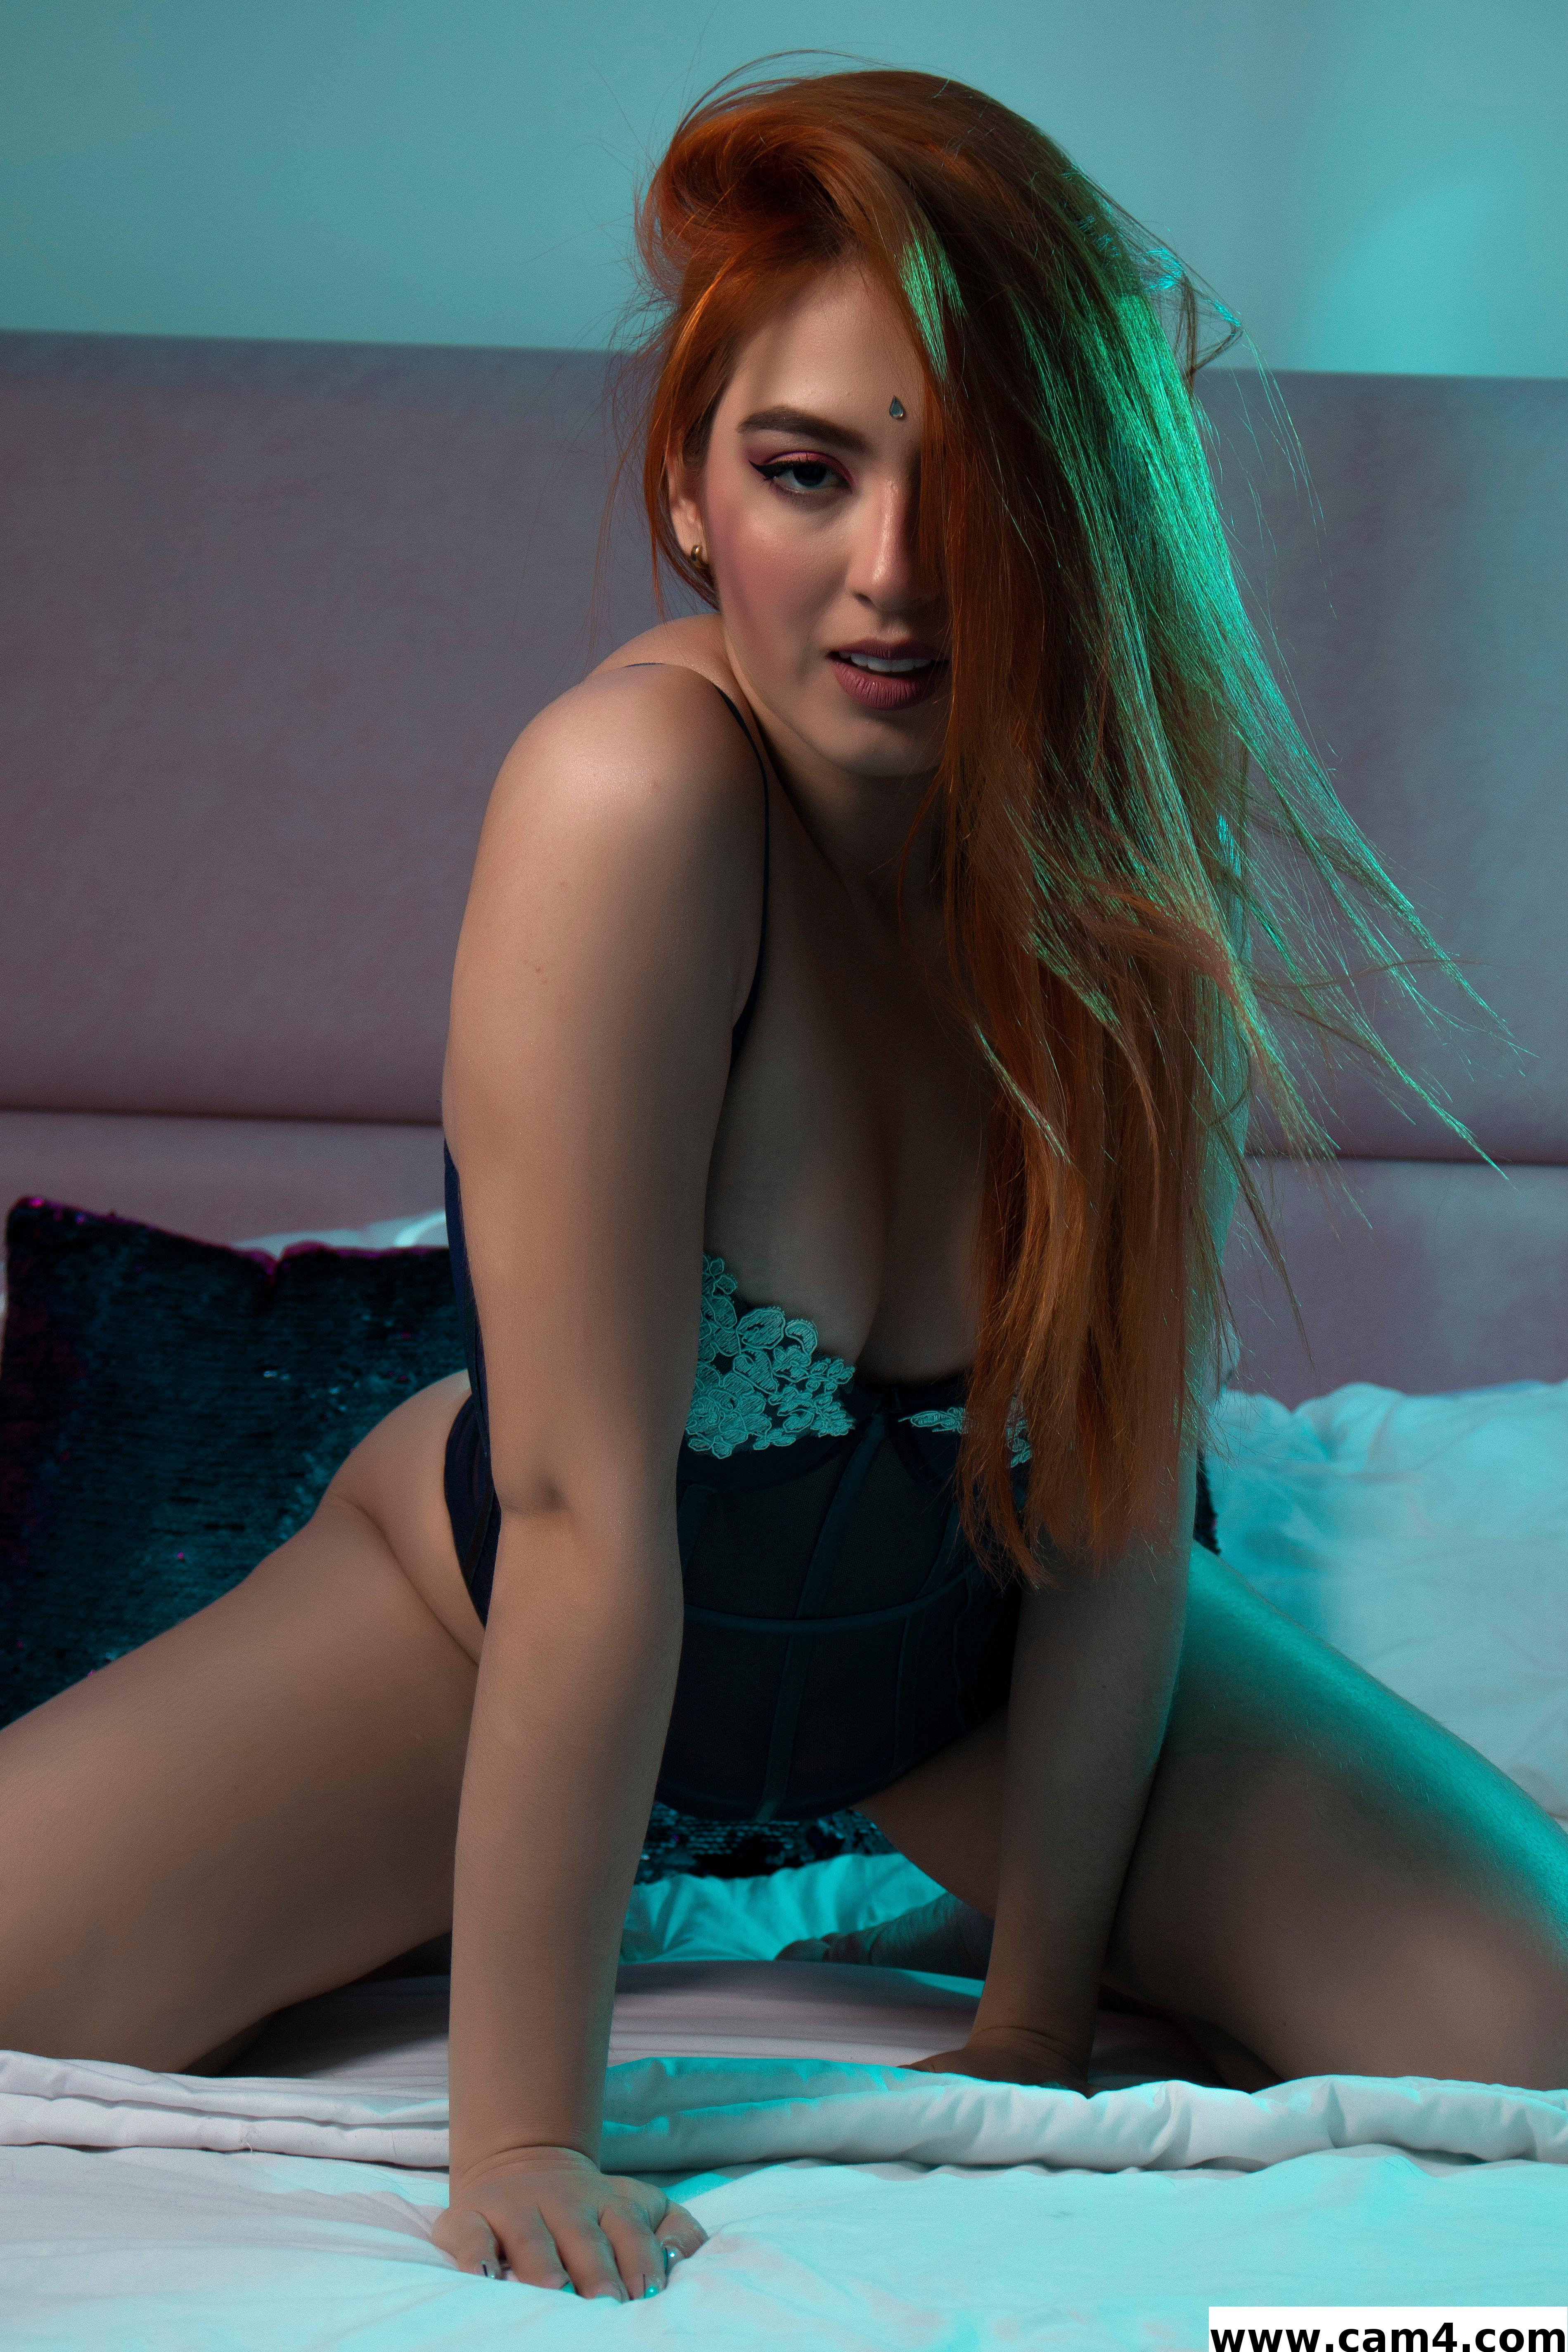 Salome Cutee S Cam Photos Videos Live Webcam Chat On Cam4